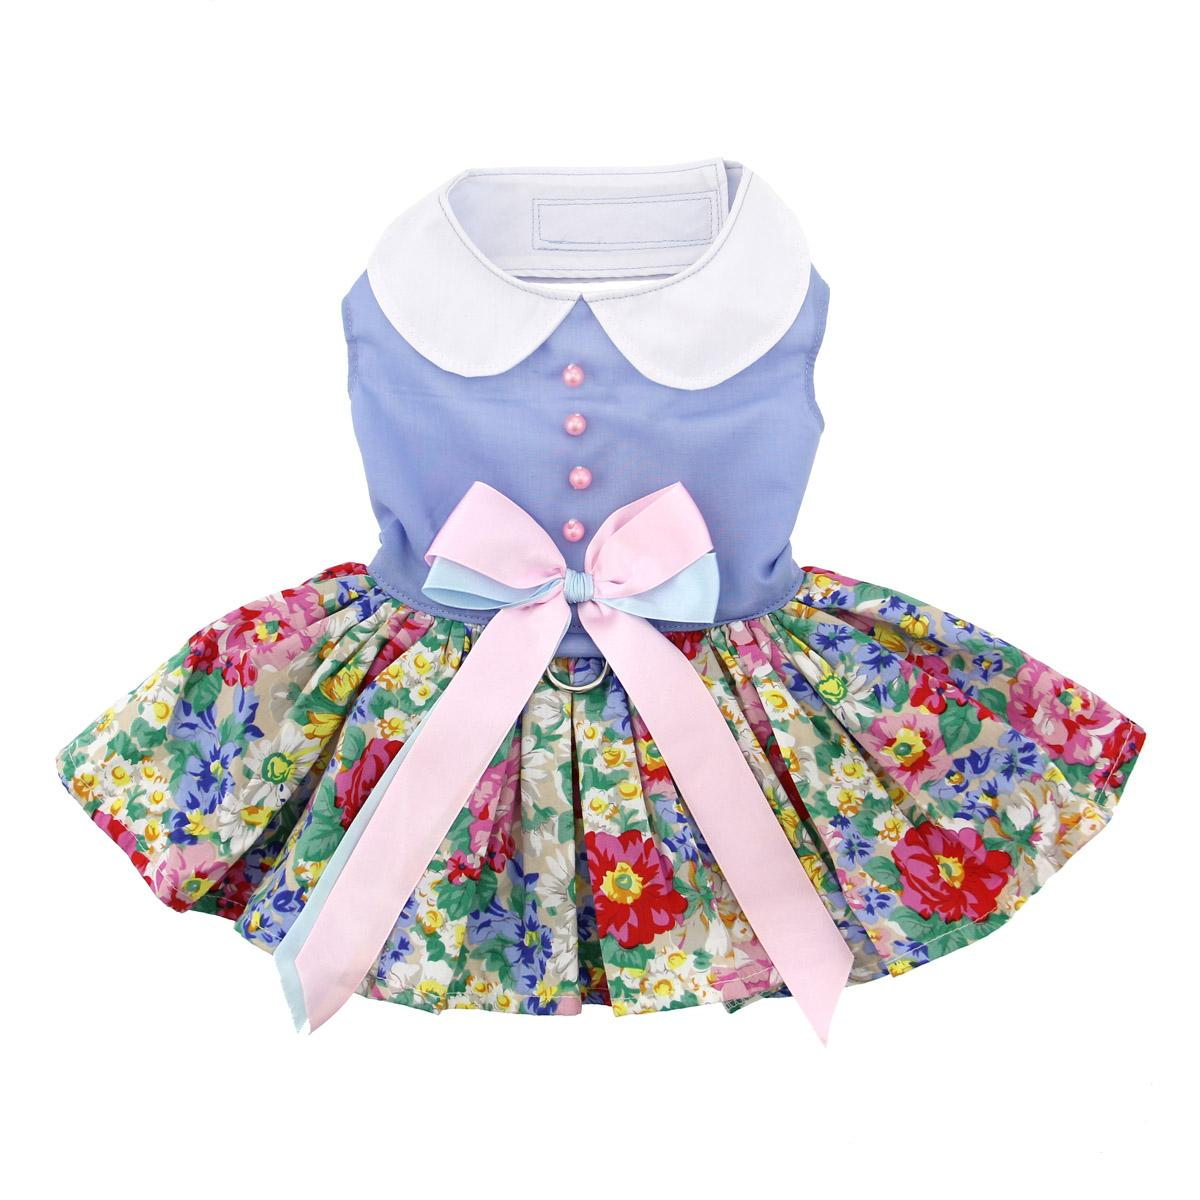 Powder Blue and Pearls Floral Dog Harness Dress by Doggie Design